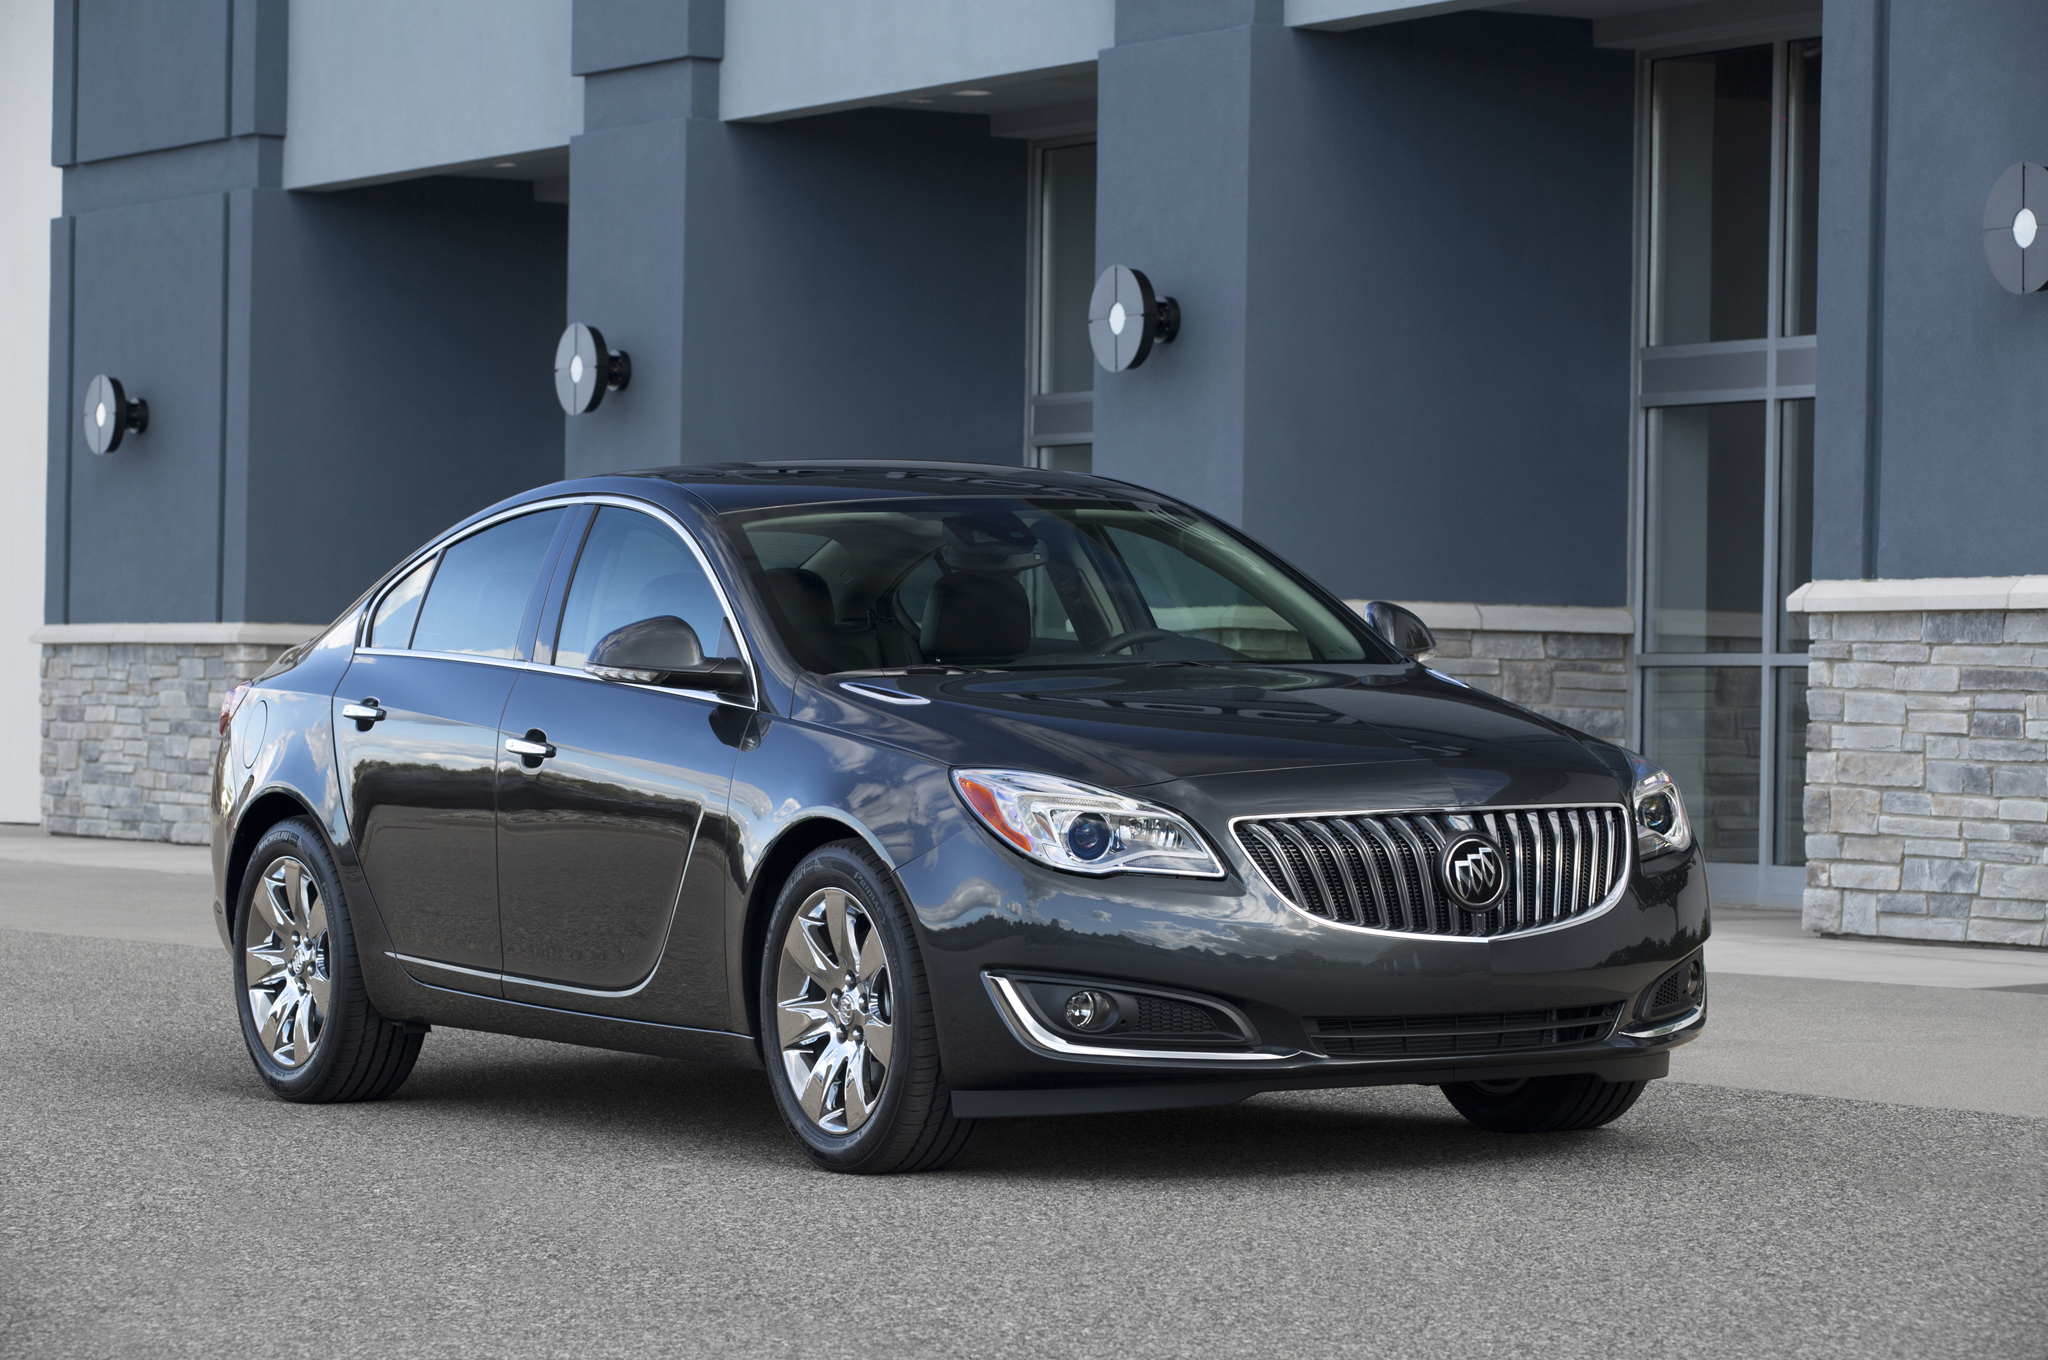 2015 Buick Regal #14